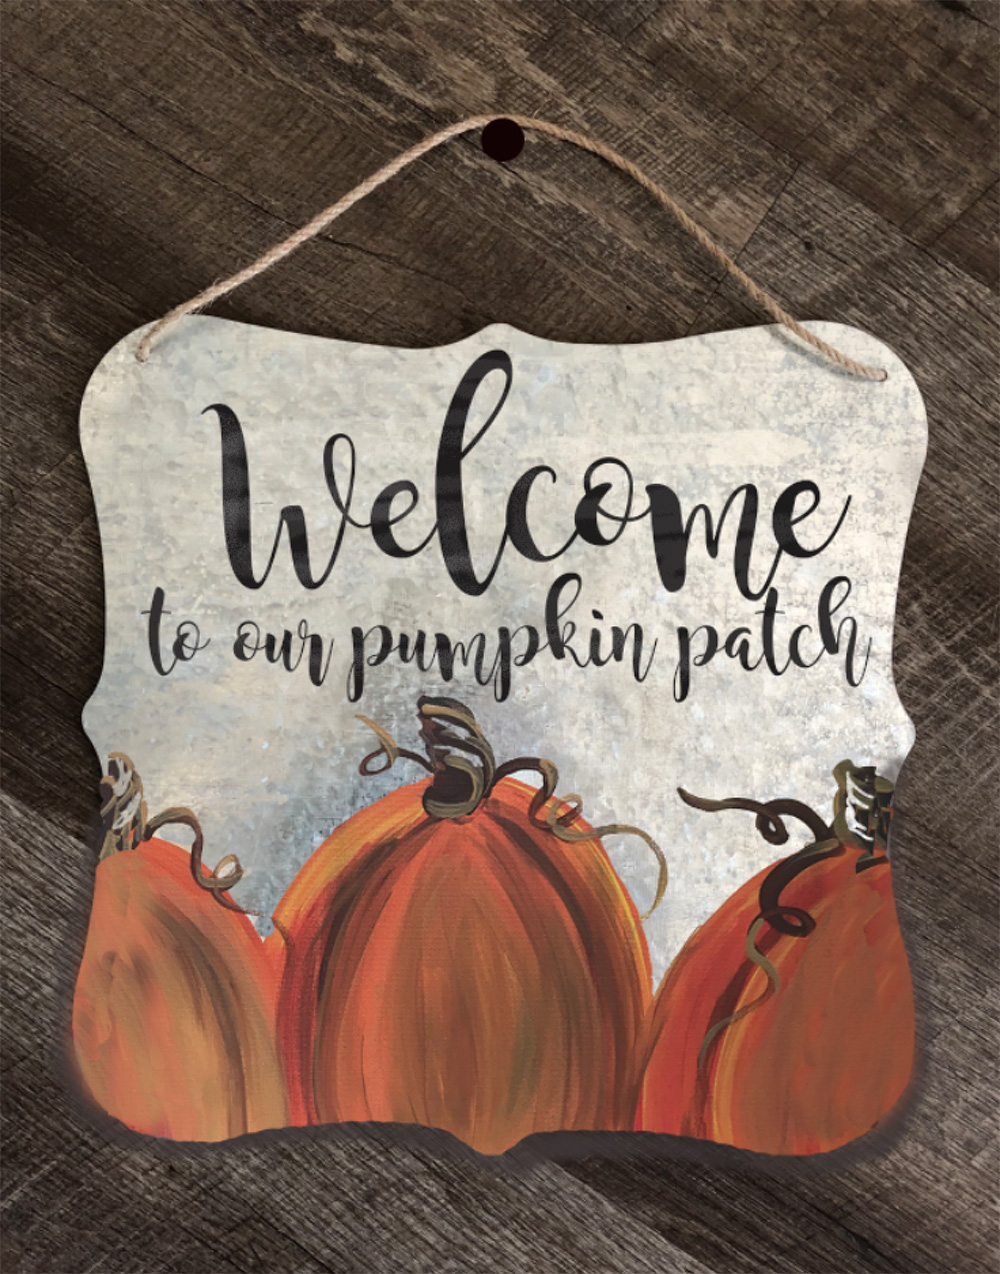 METAL WELCOME SIGN - OCT 10 - 6:30PM - REGENCY WINE BAR